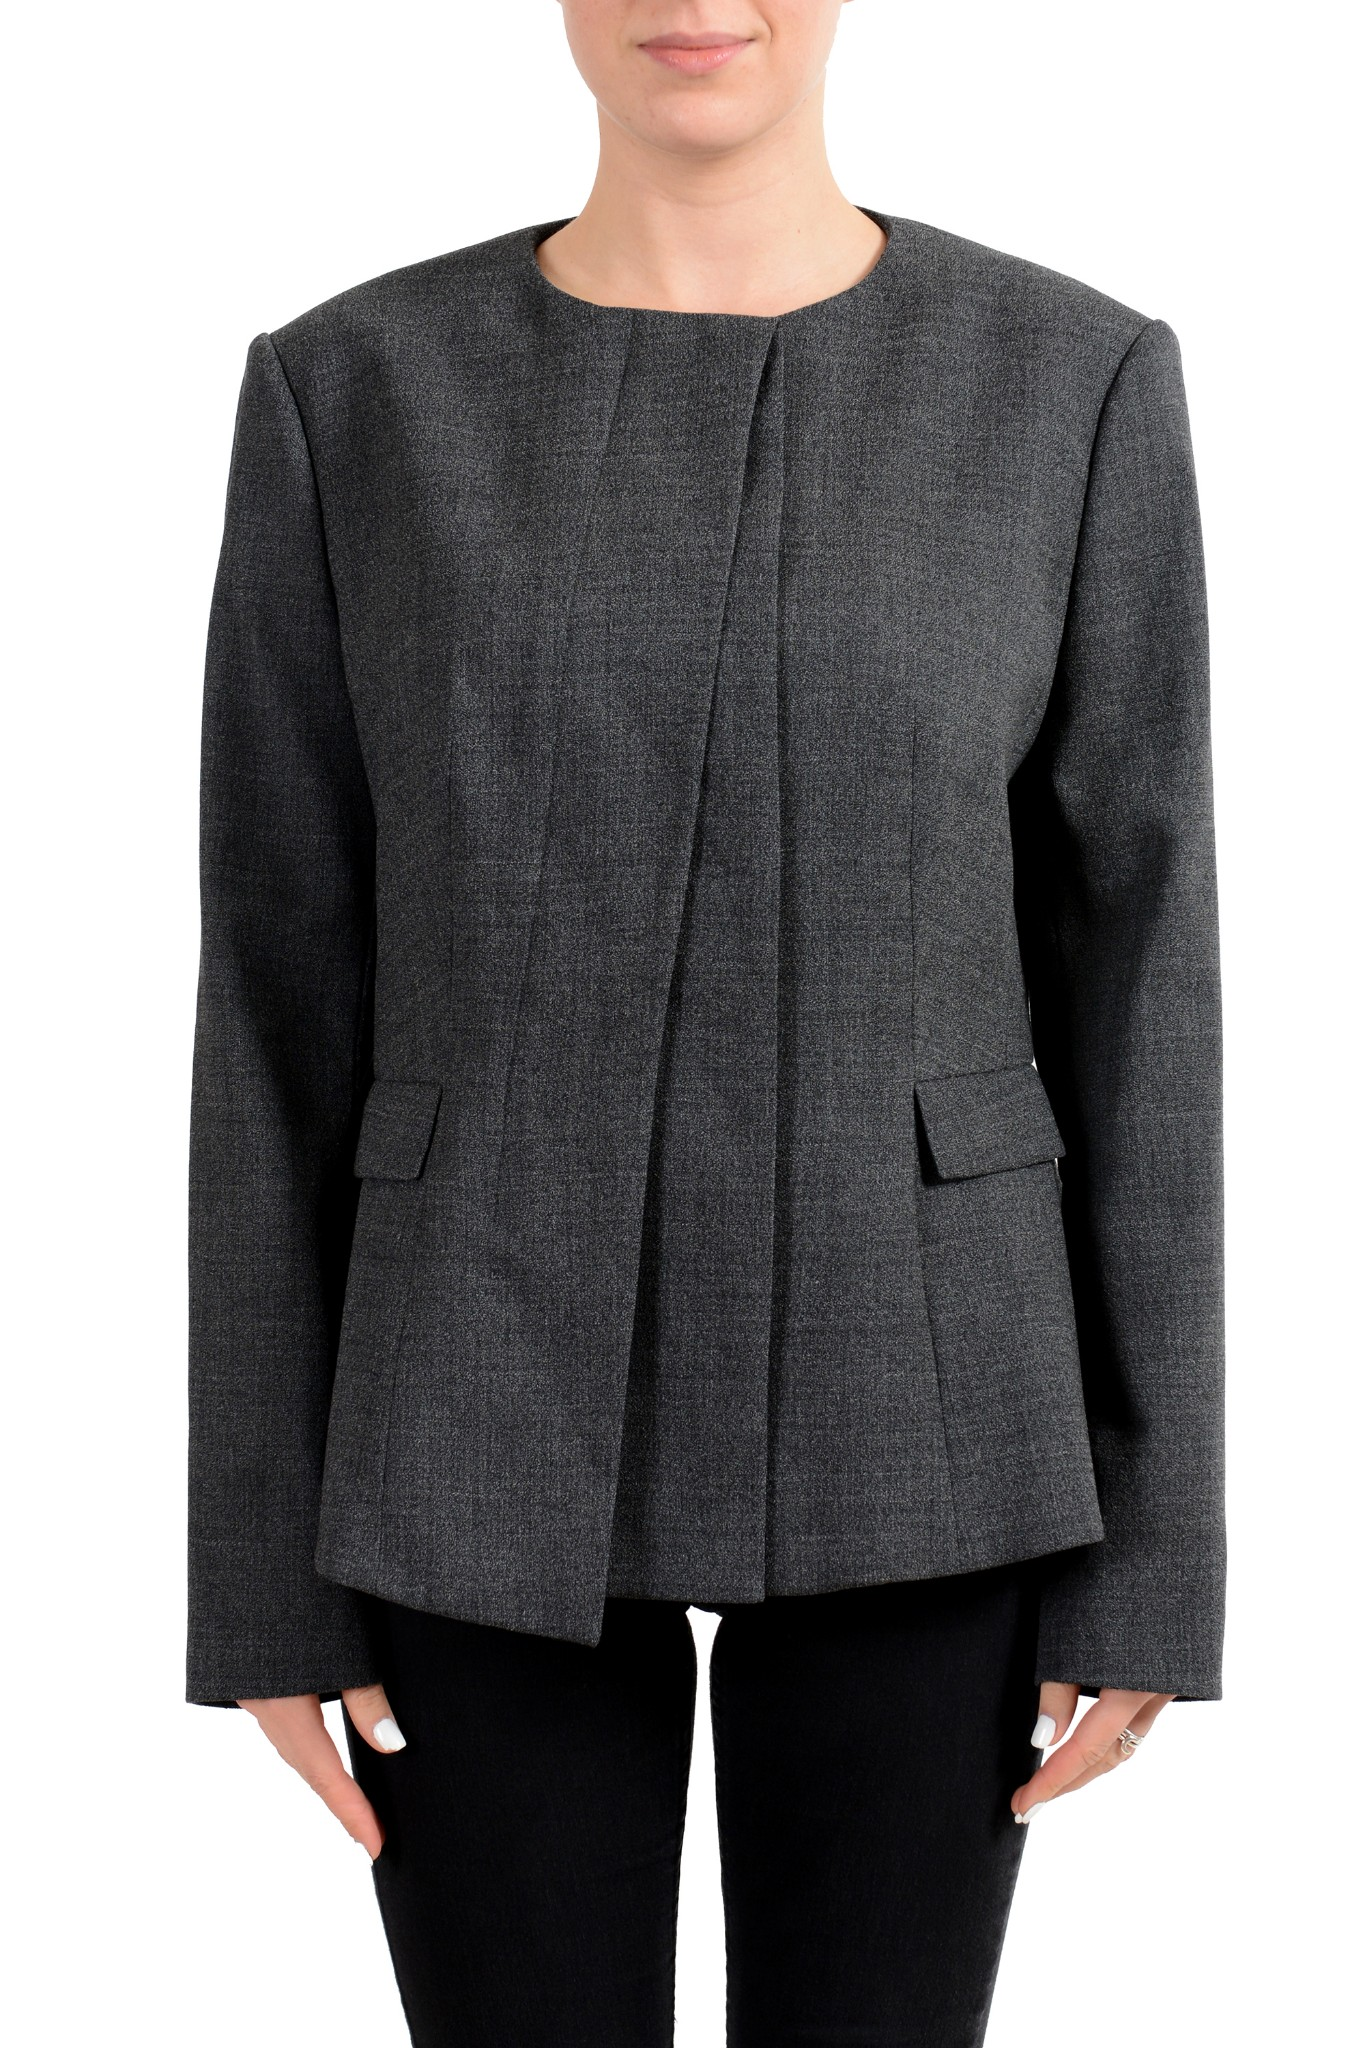 "Hugo Boss /""Janore/"" Wool Gray One Button Women/'s Blazer US 12 IT 48"